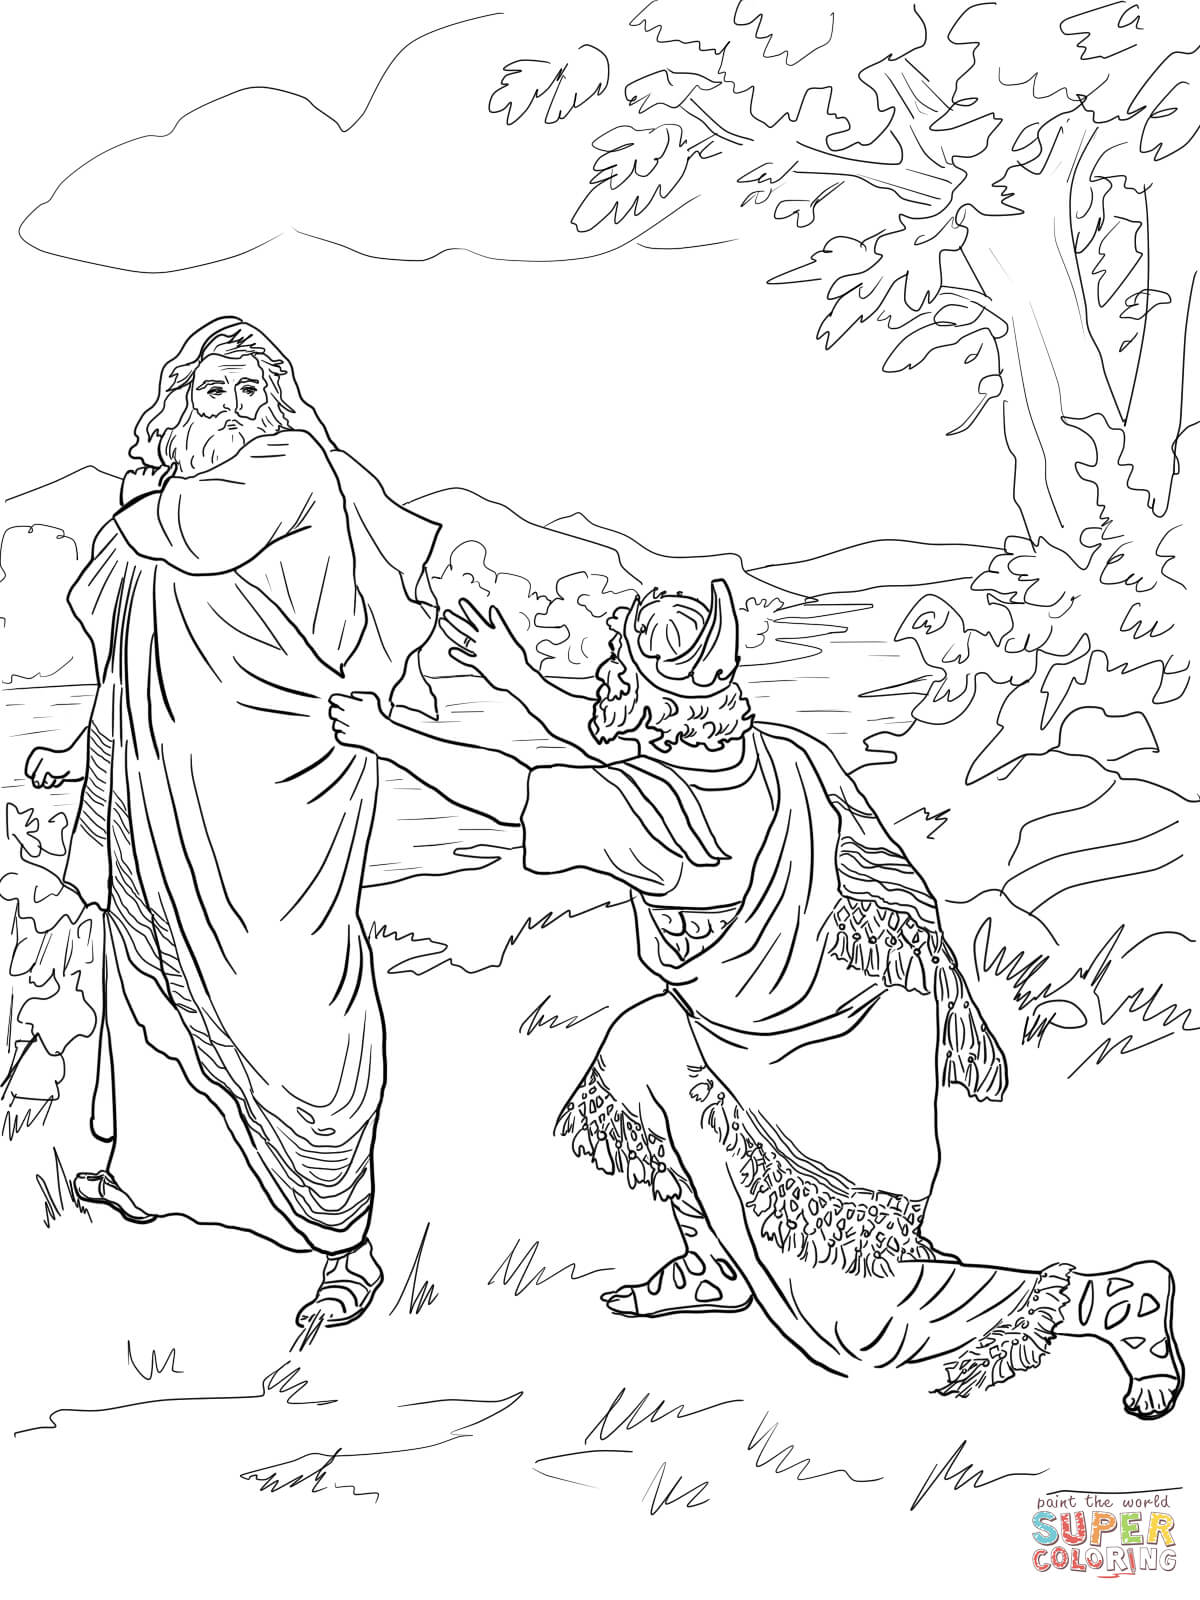 Coloring Pages King : King saul coloring page home